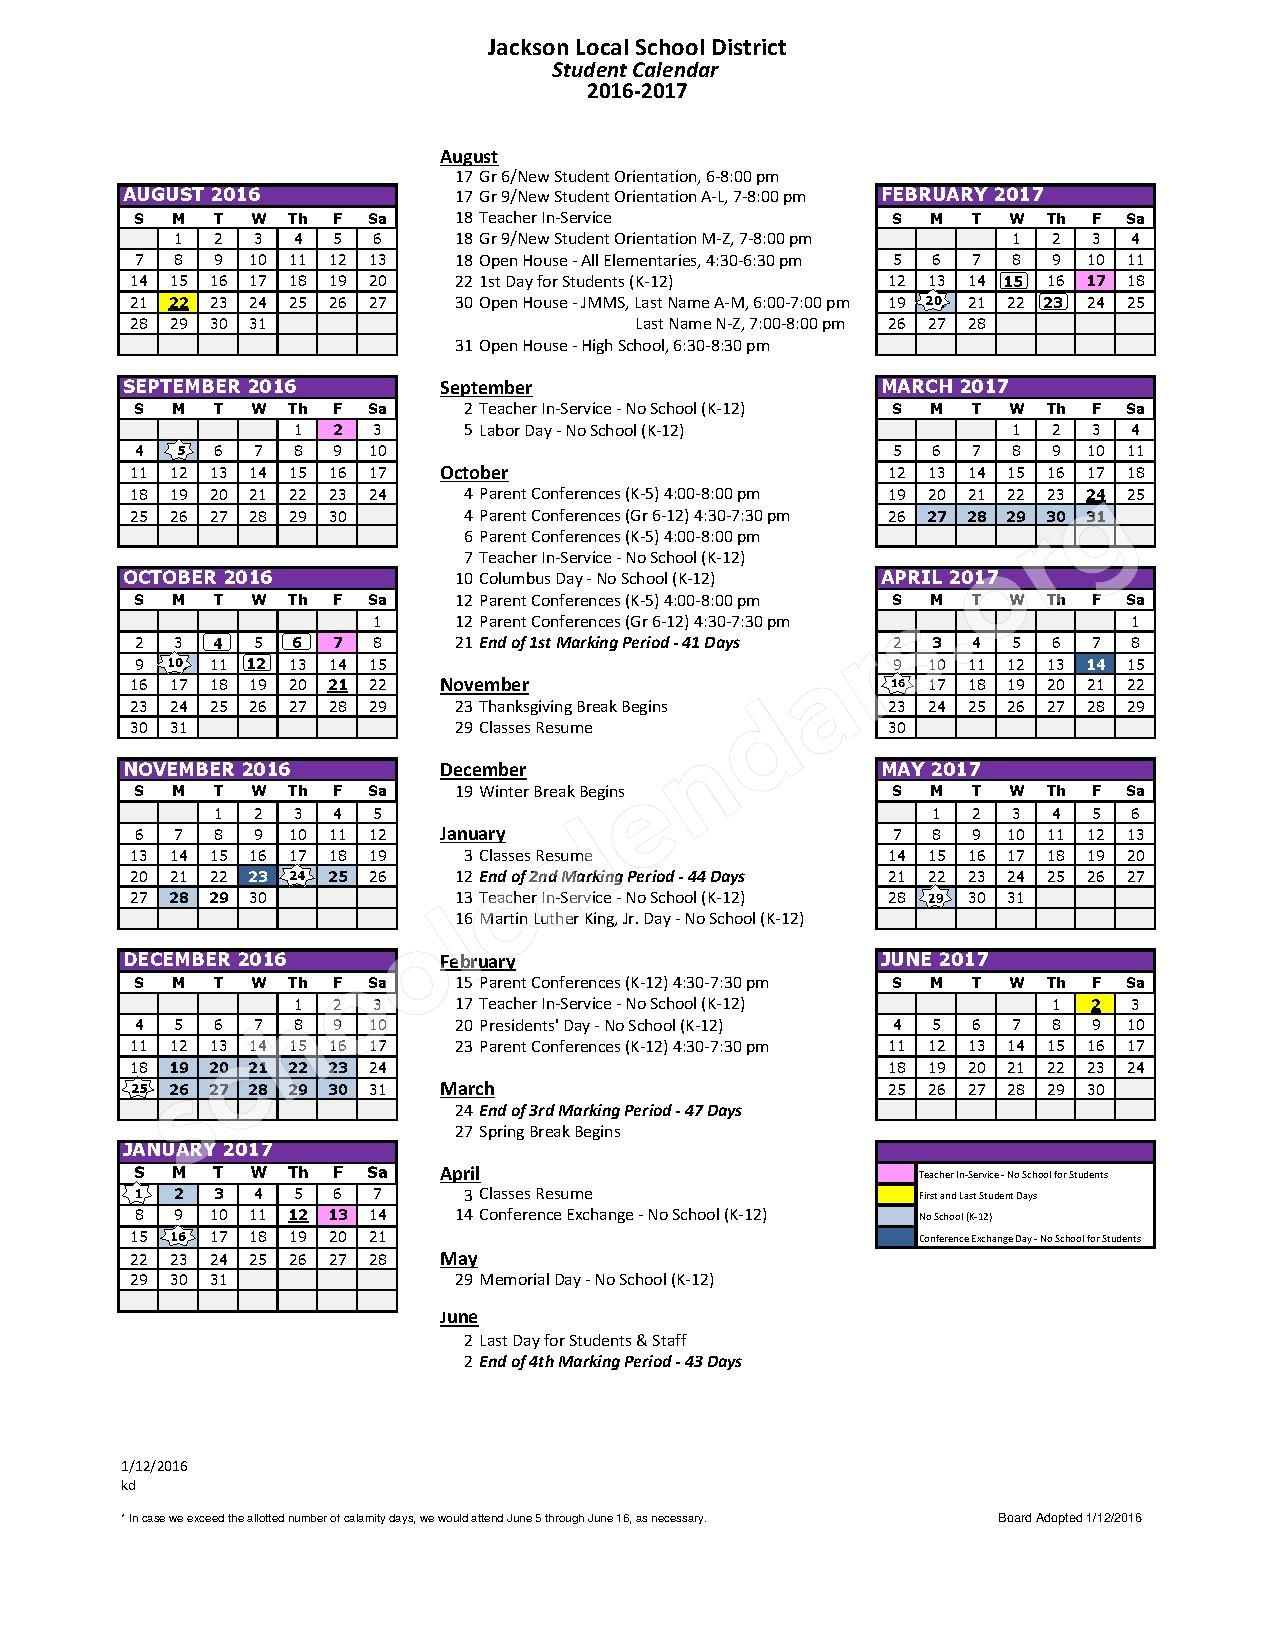 2016 - 2017 District Calendar – Strausser Elementary School – page 1